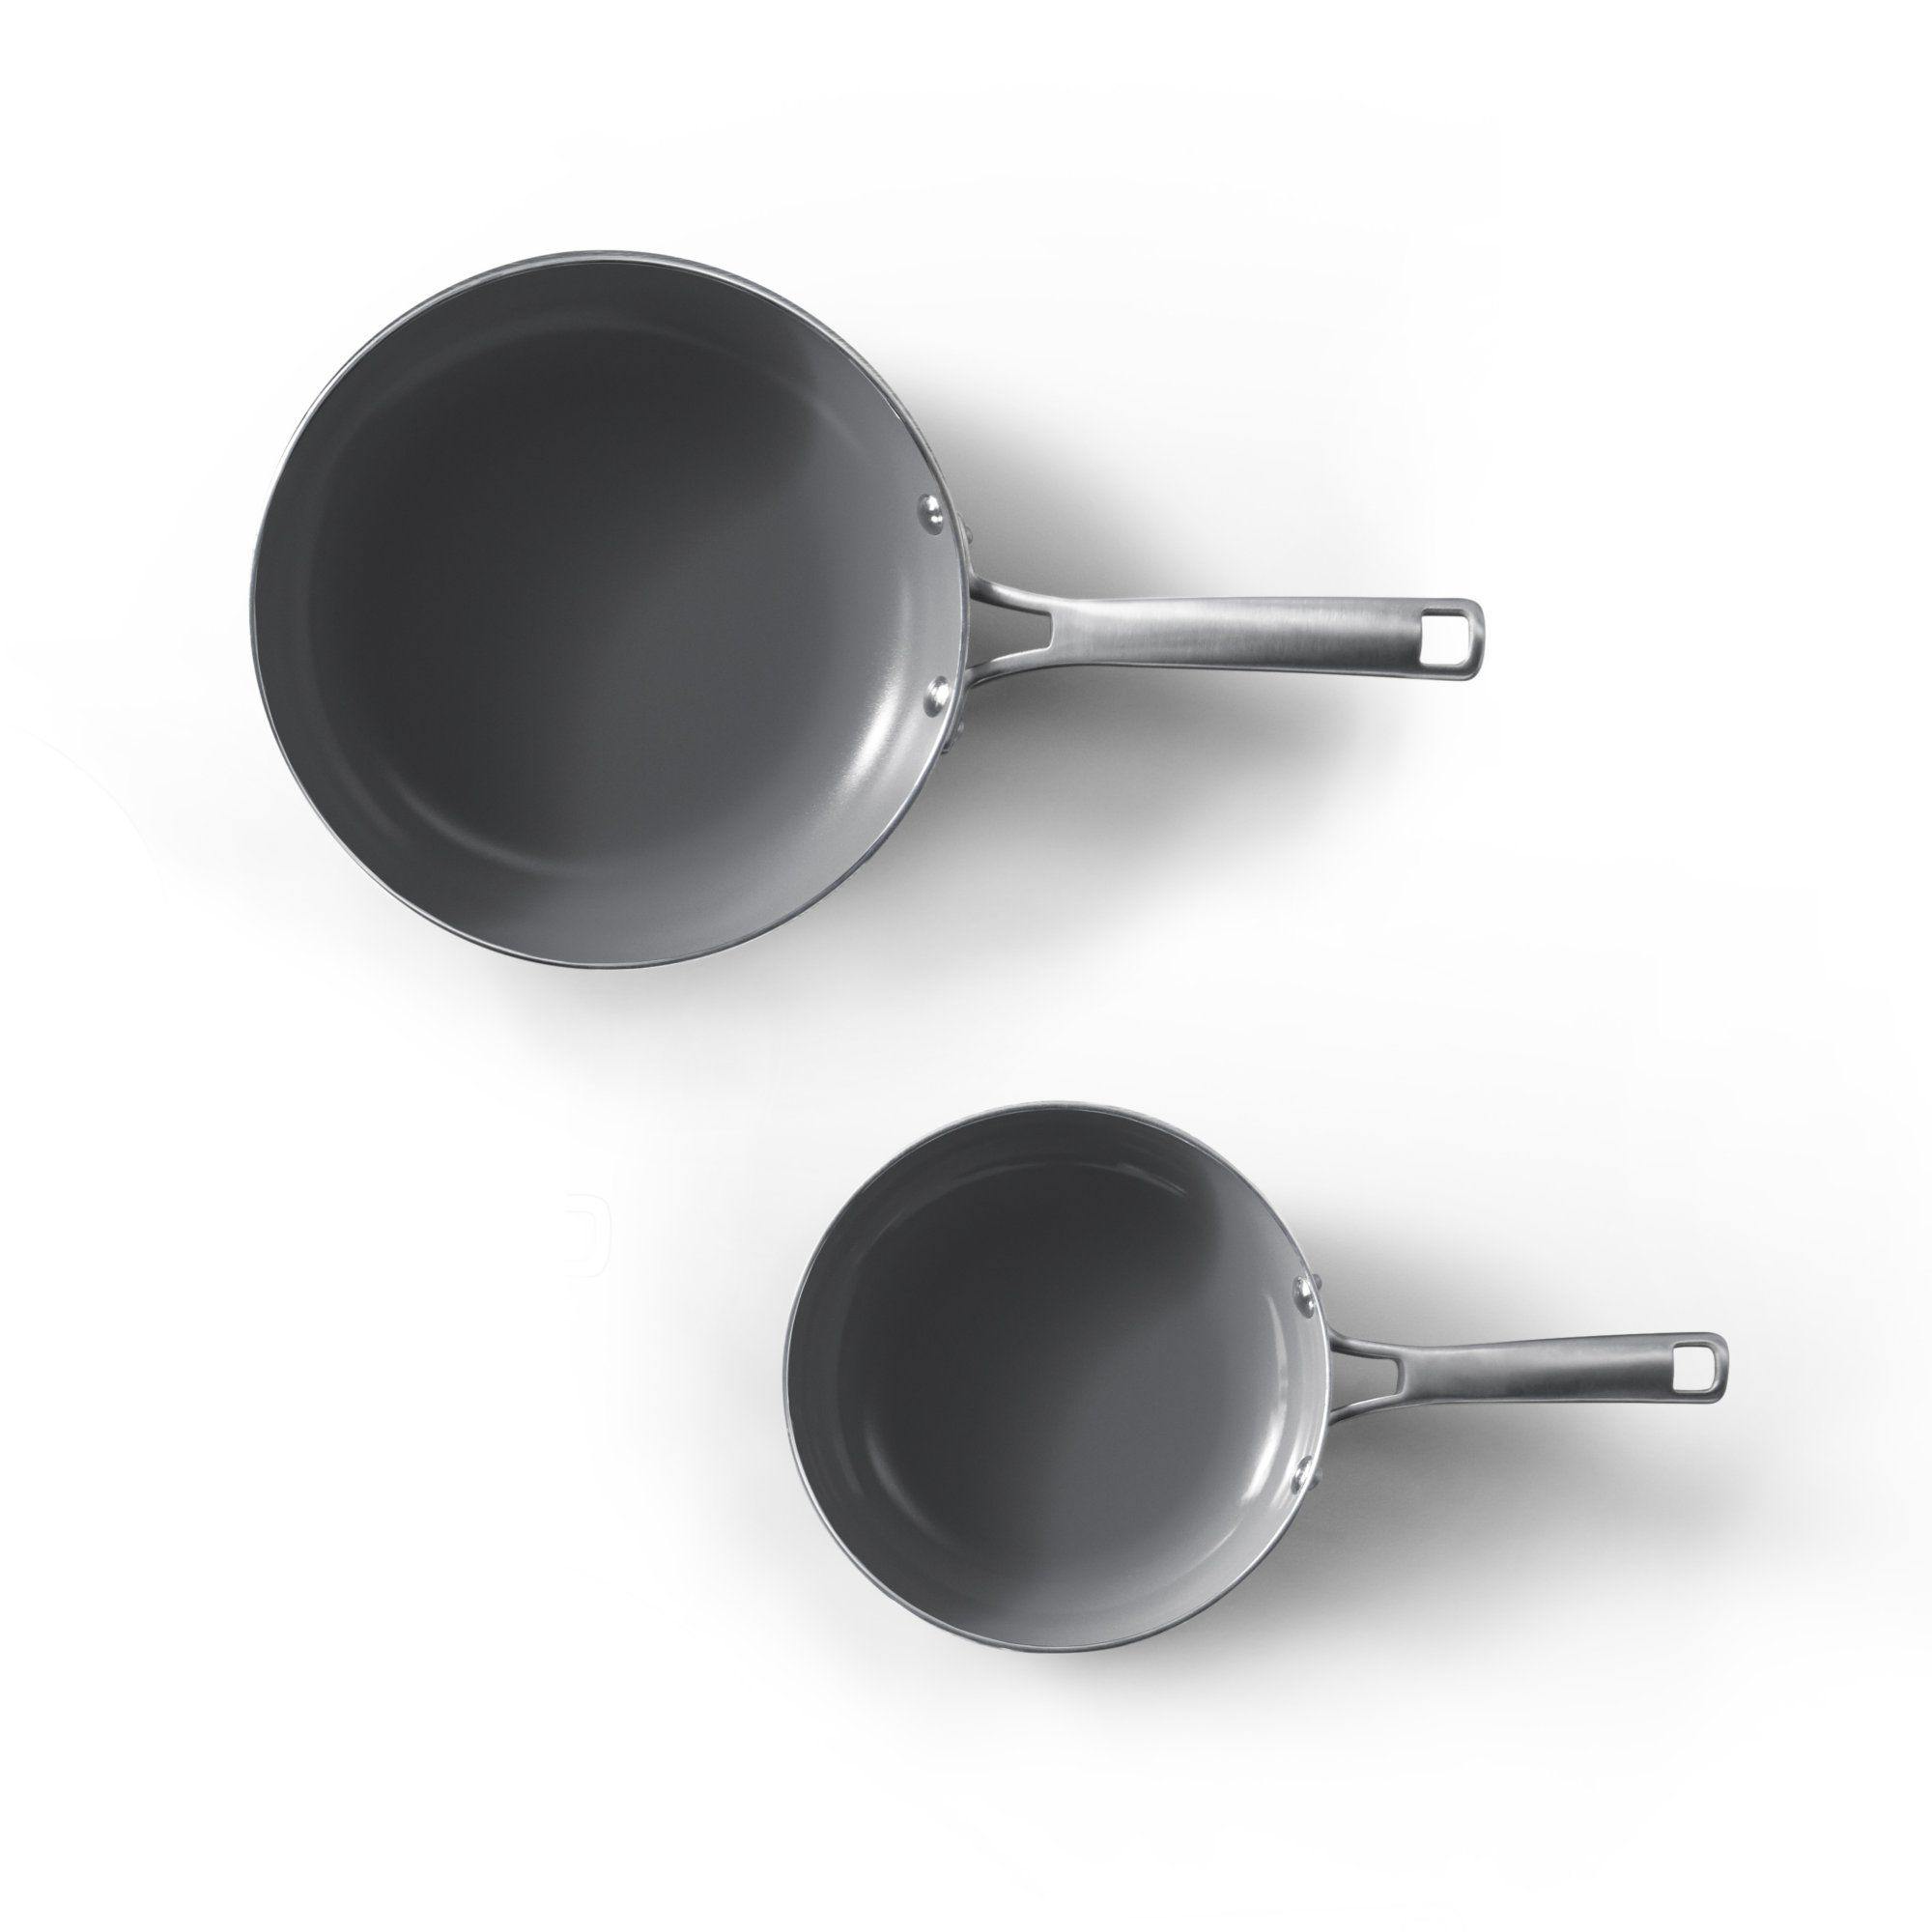 Calphalon Classic Oil Infused Ceramic 2- Piece Fry Pan Set